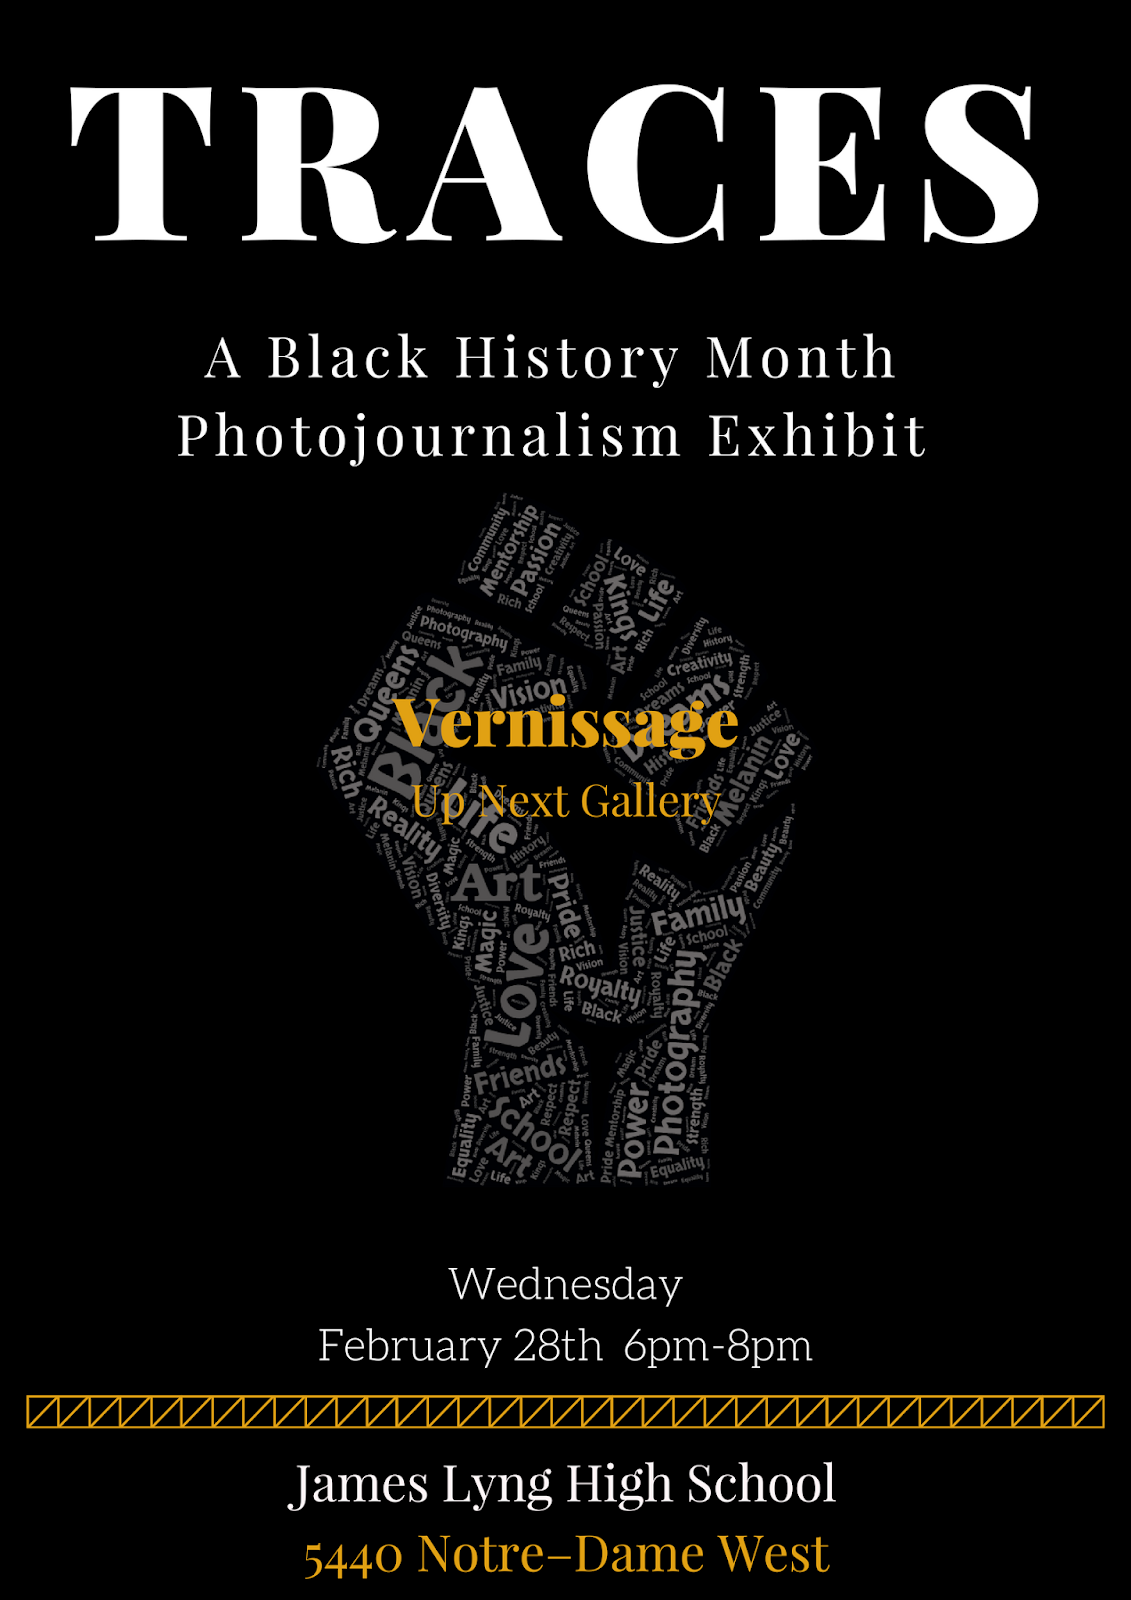 PHOTOJOURNALISM EXHIBIT Traces Is An Introspective Photojournalism Exhibit Put Together By A Group Of Self Identified Black Students At James Lyng High